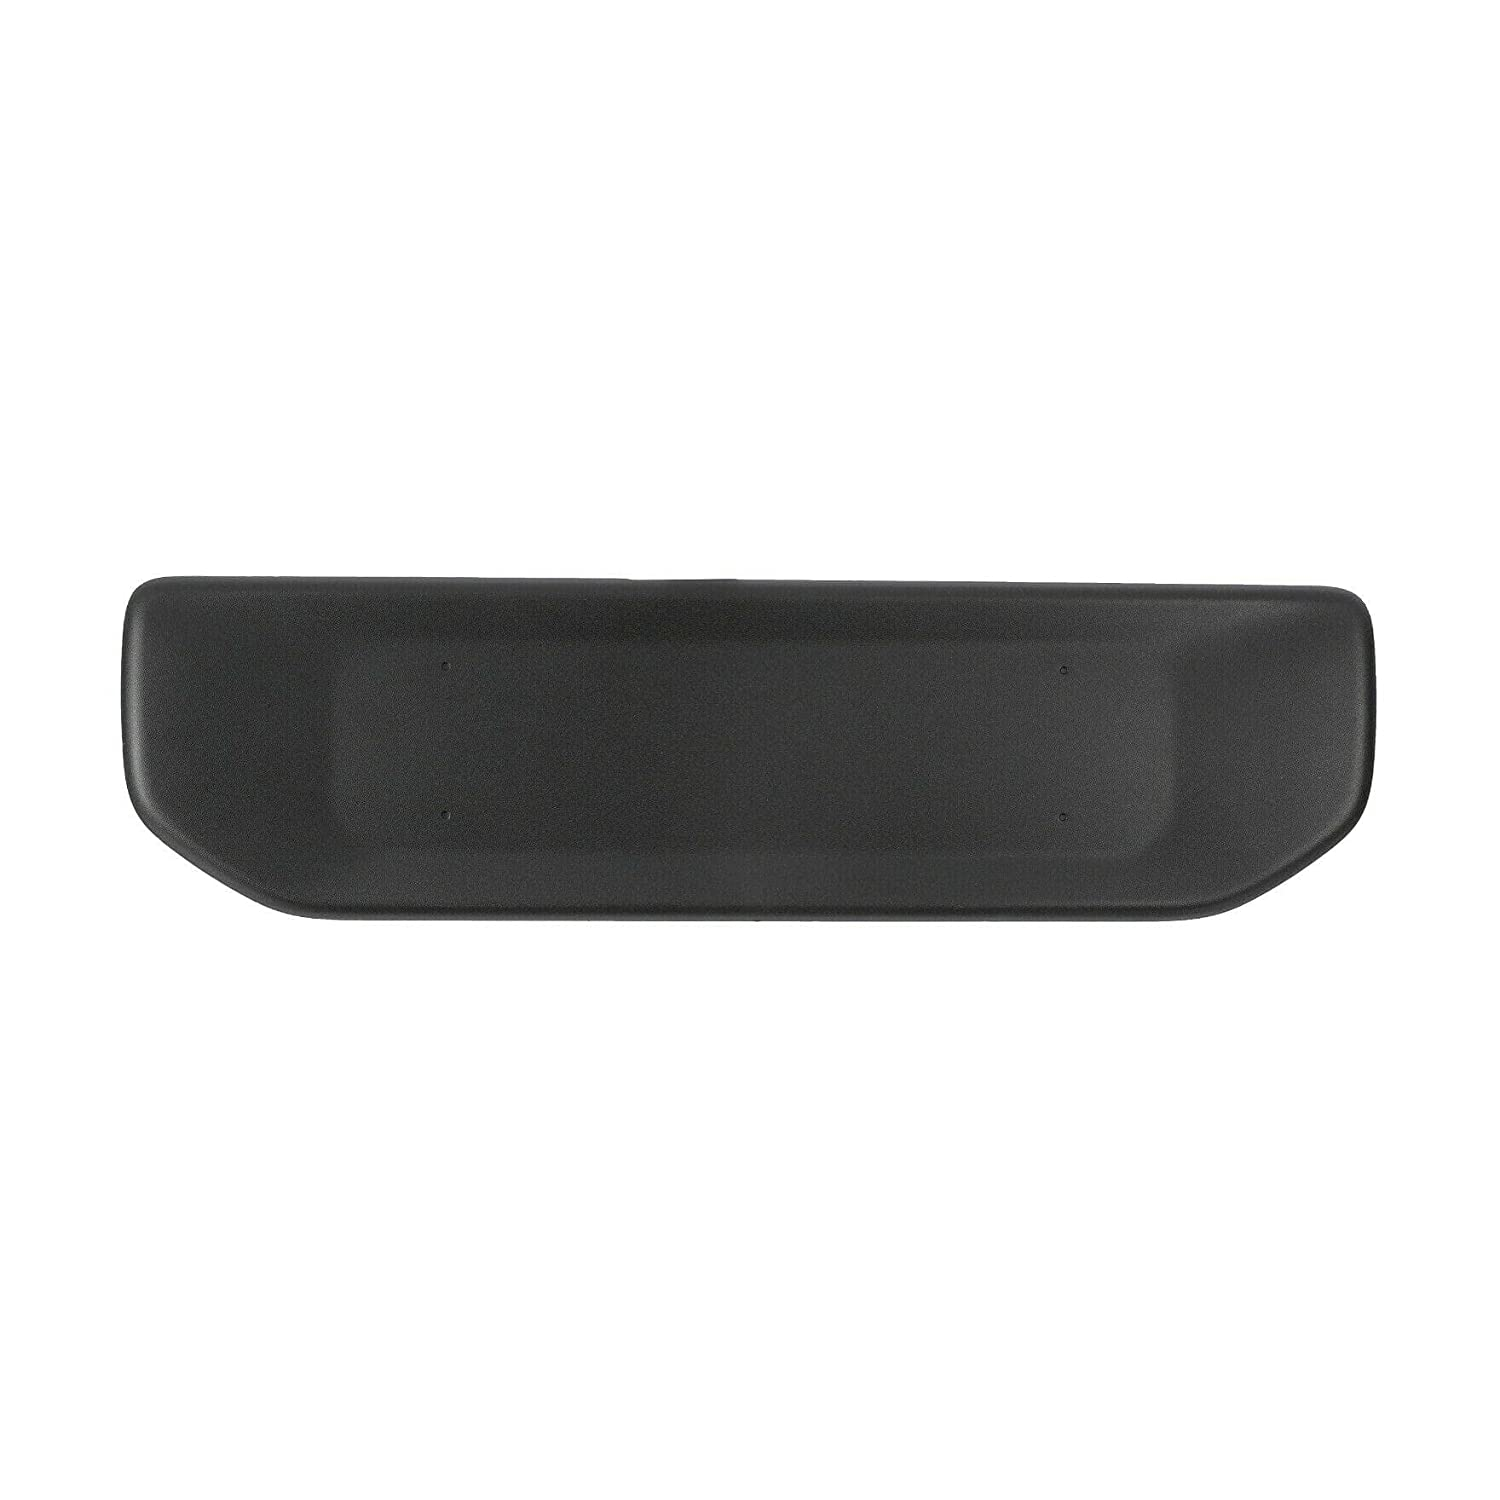 Genuine OEM 2018-2020 Wrangler JL Front Bumper Close P Steel Max 65% OFF Out 67% OFF of fixed price